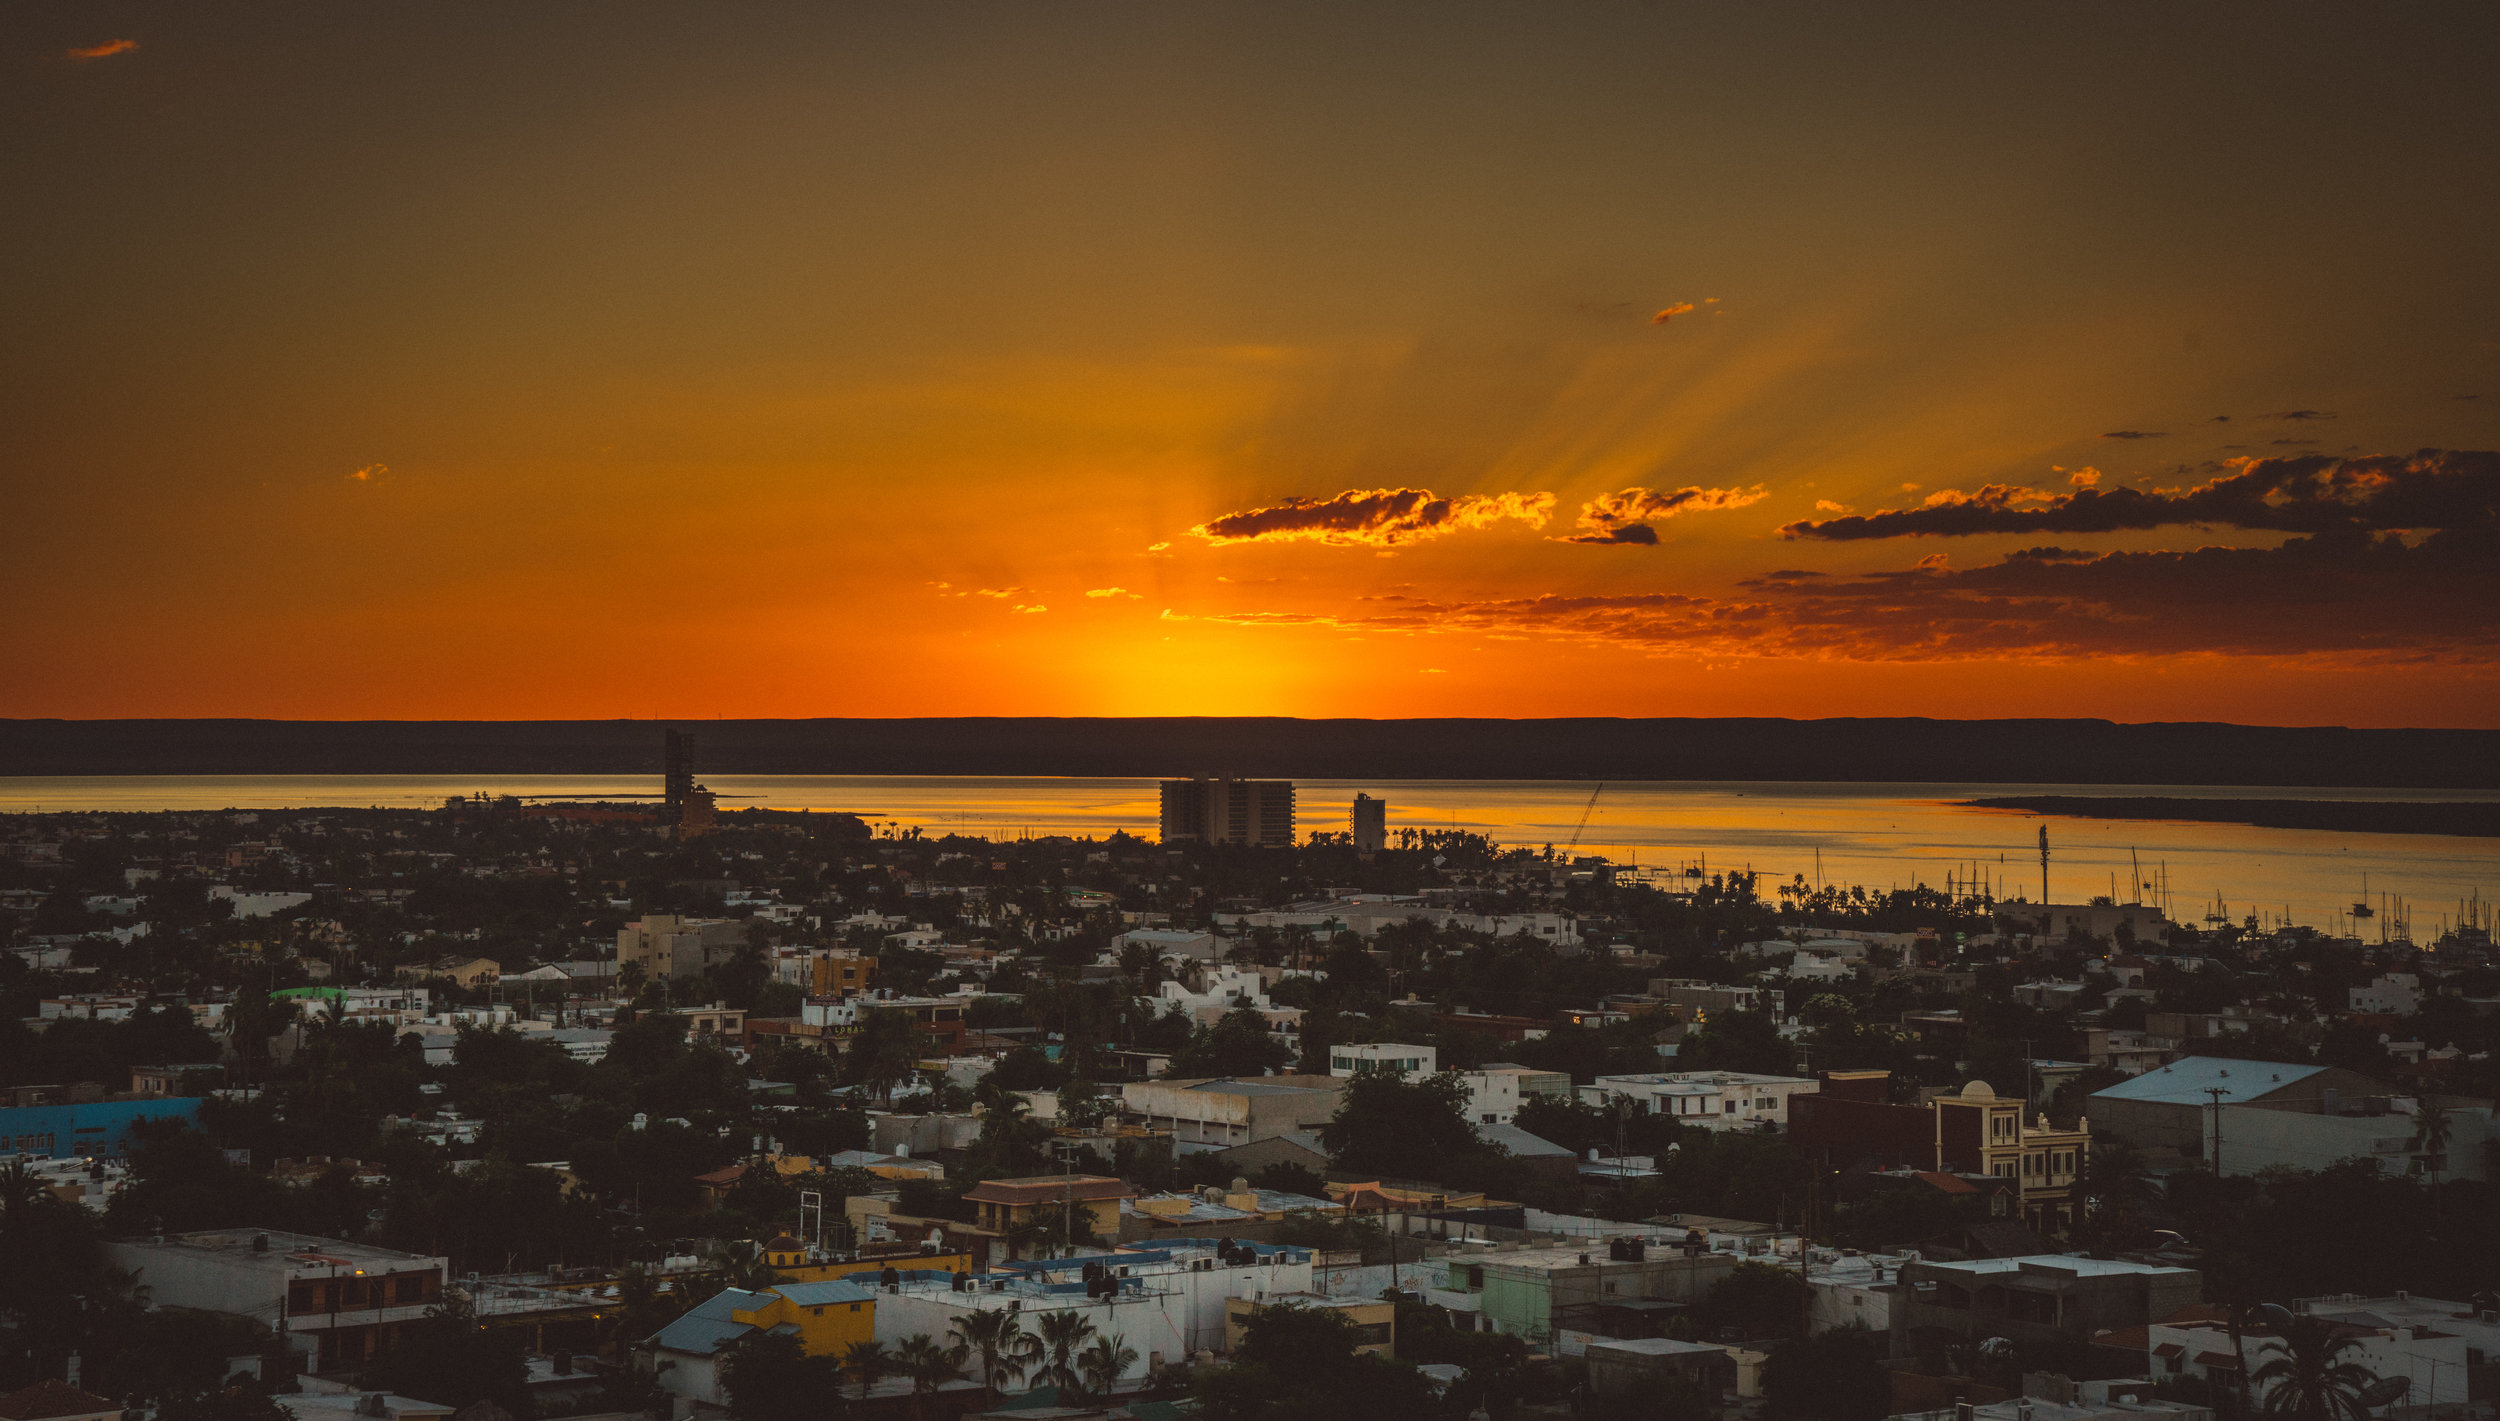 Sunset over La Paz from the roof of Hotel One.